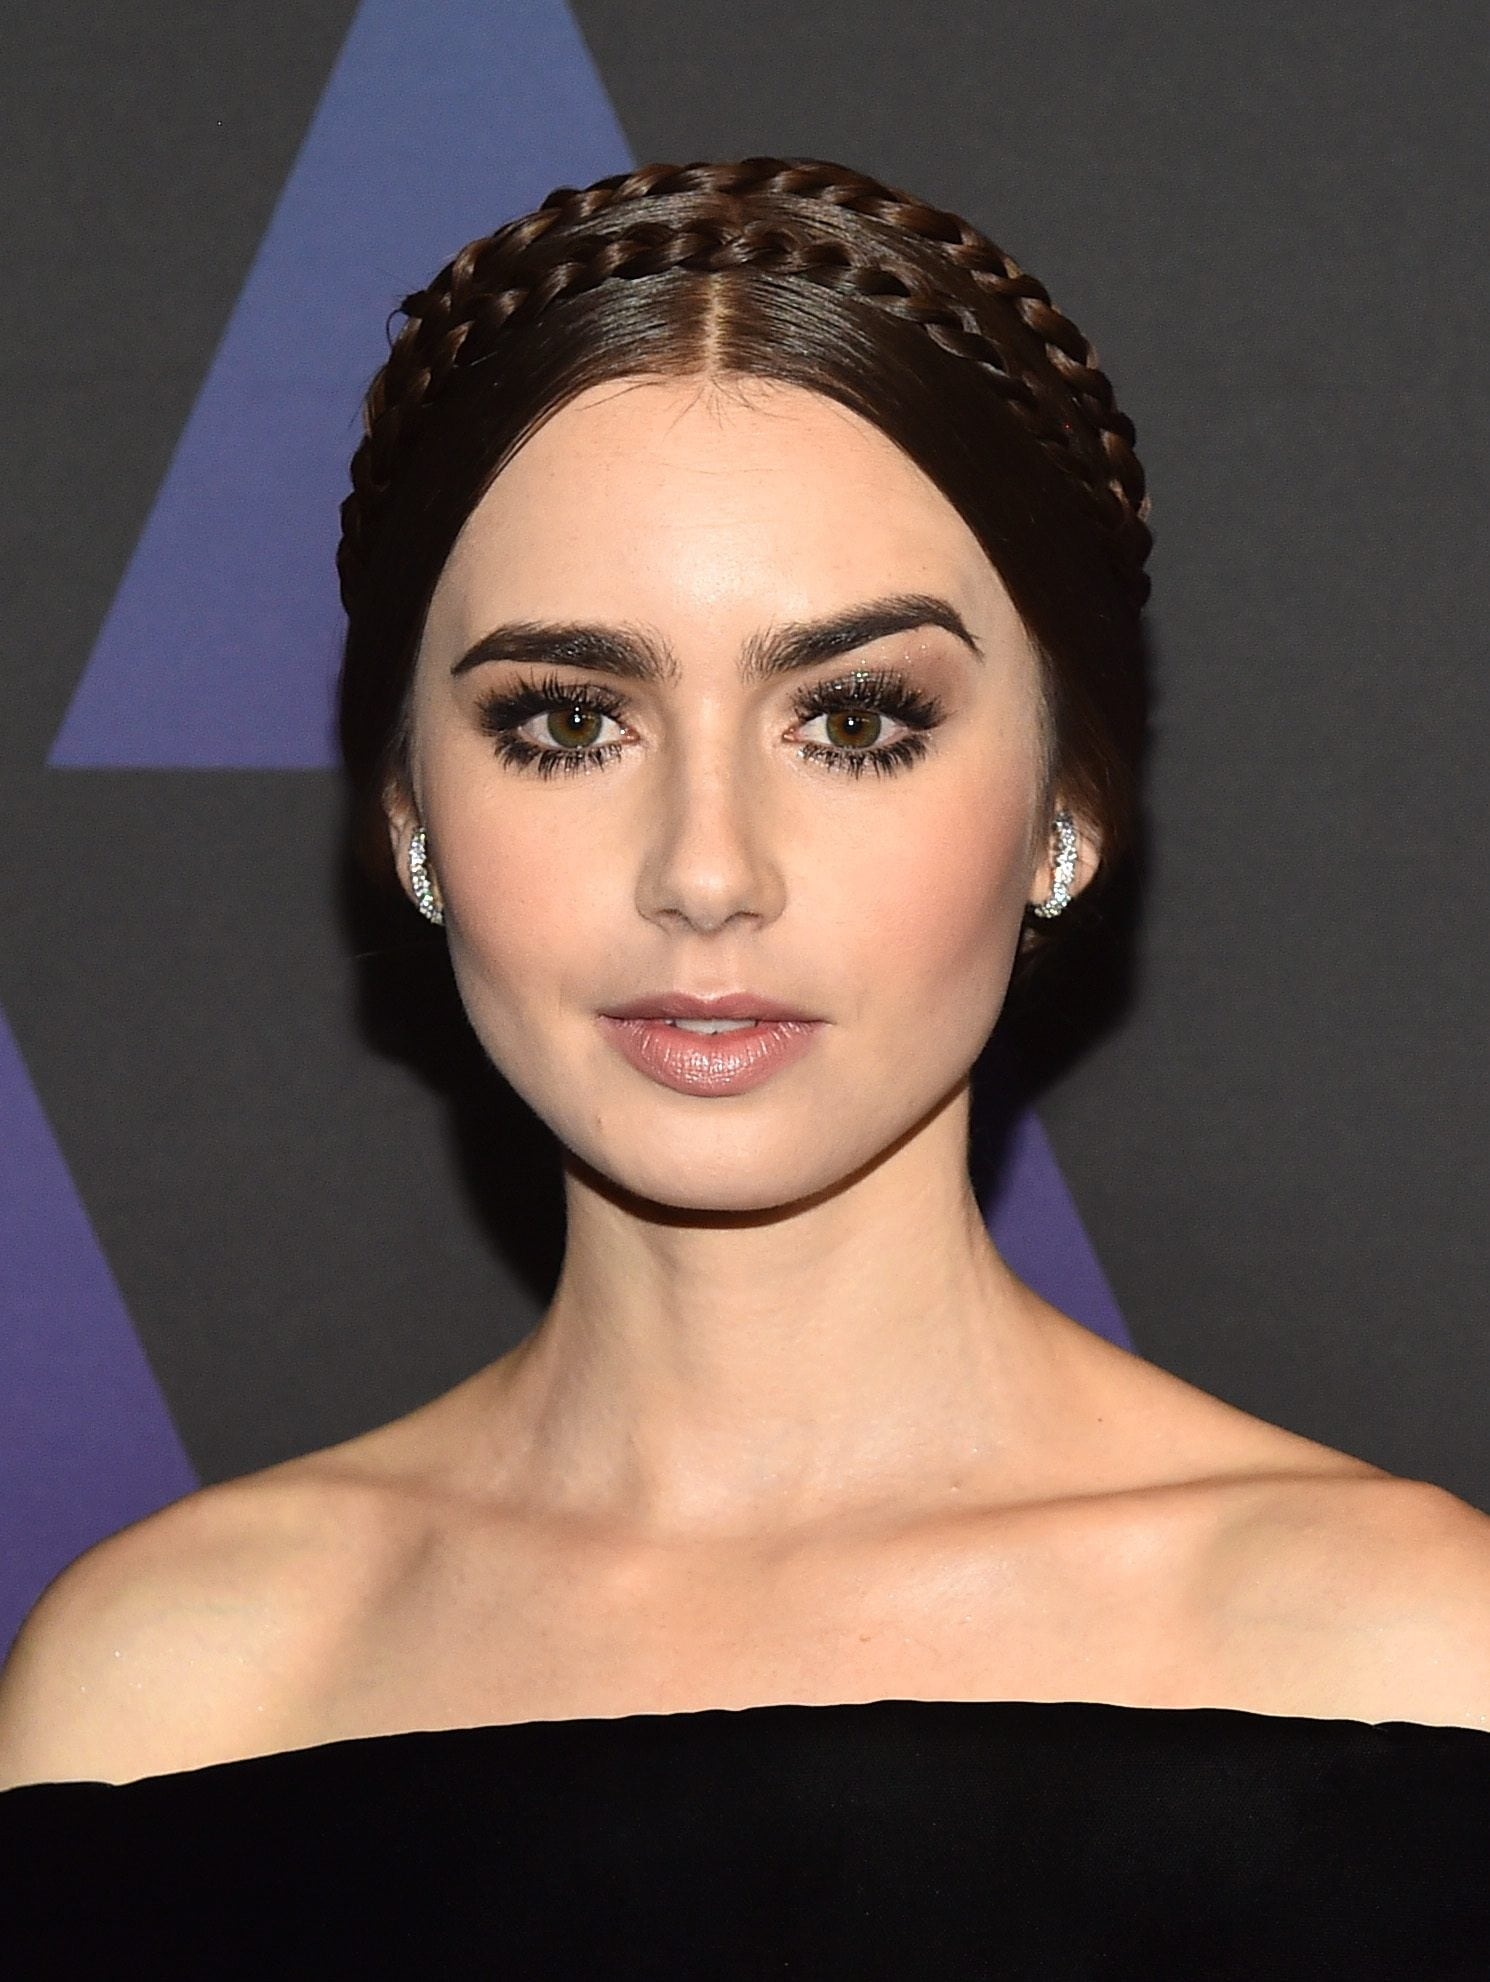 Lily Collins with her dark hair styled into a double halo braid hairstyle